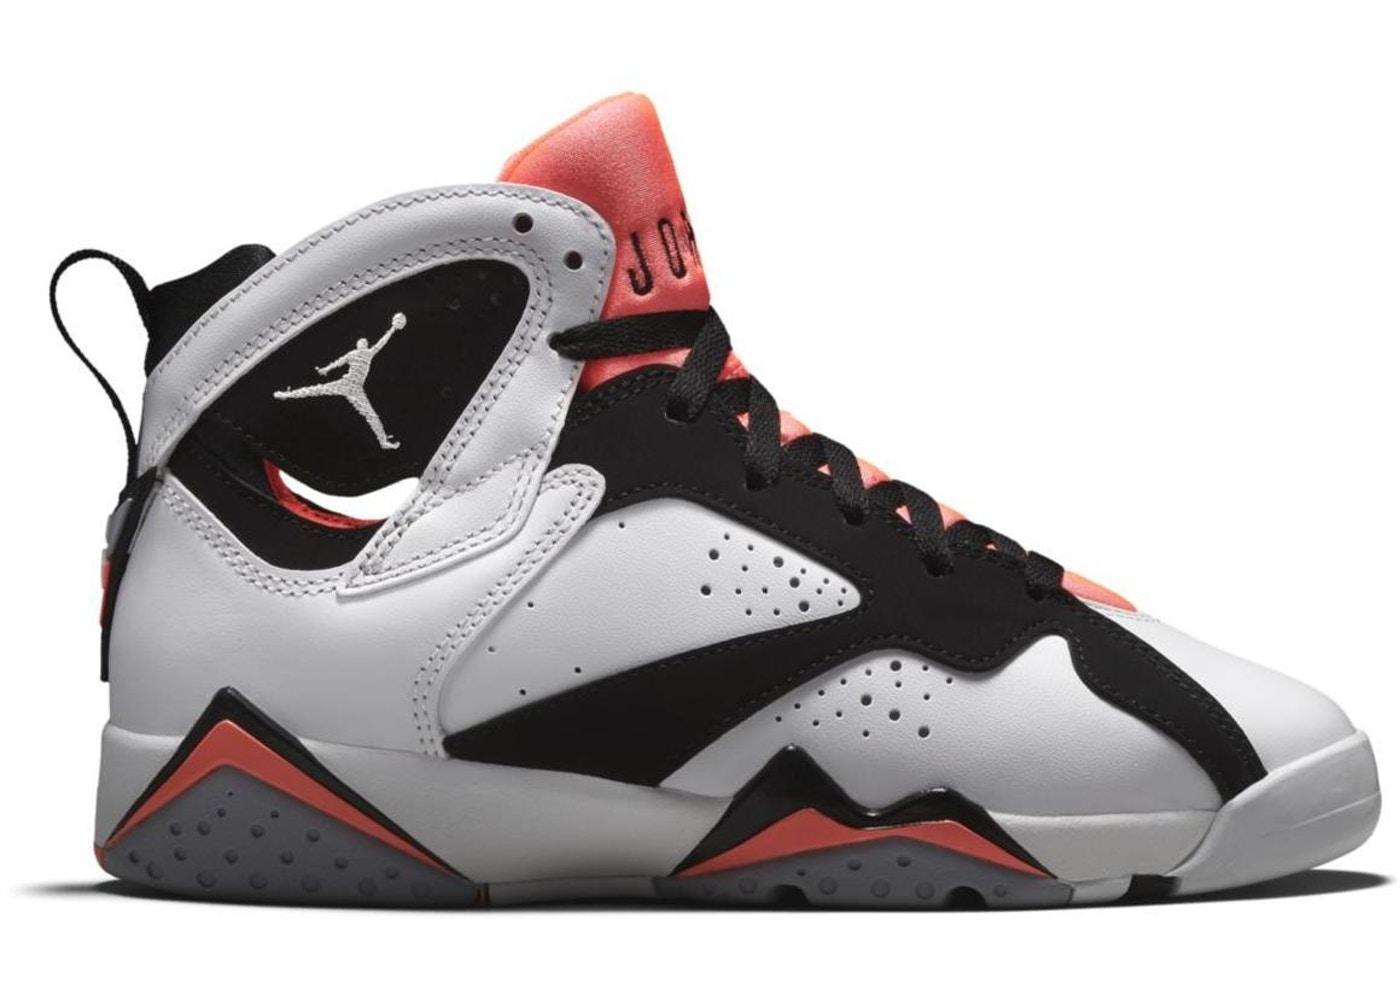 new style f190b 13f52 Jordan 7 Retro Hot Lava (GS)